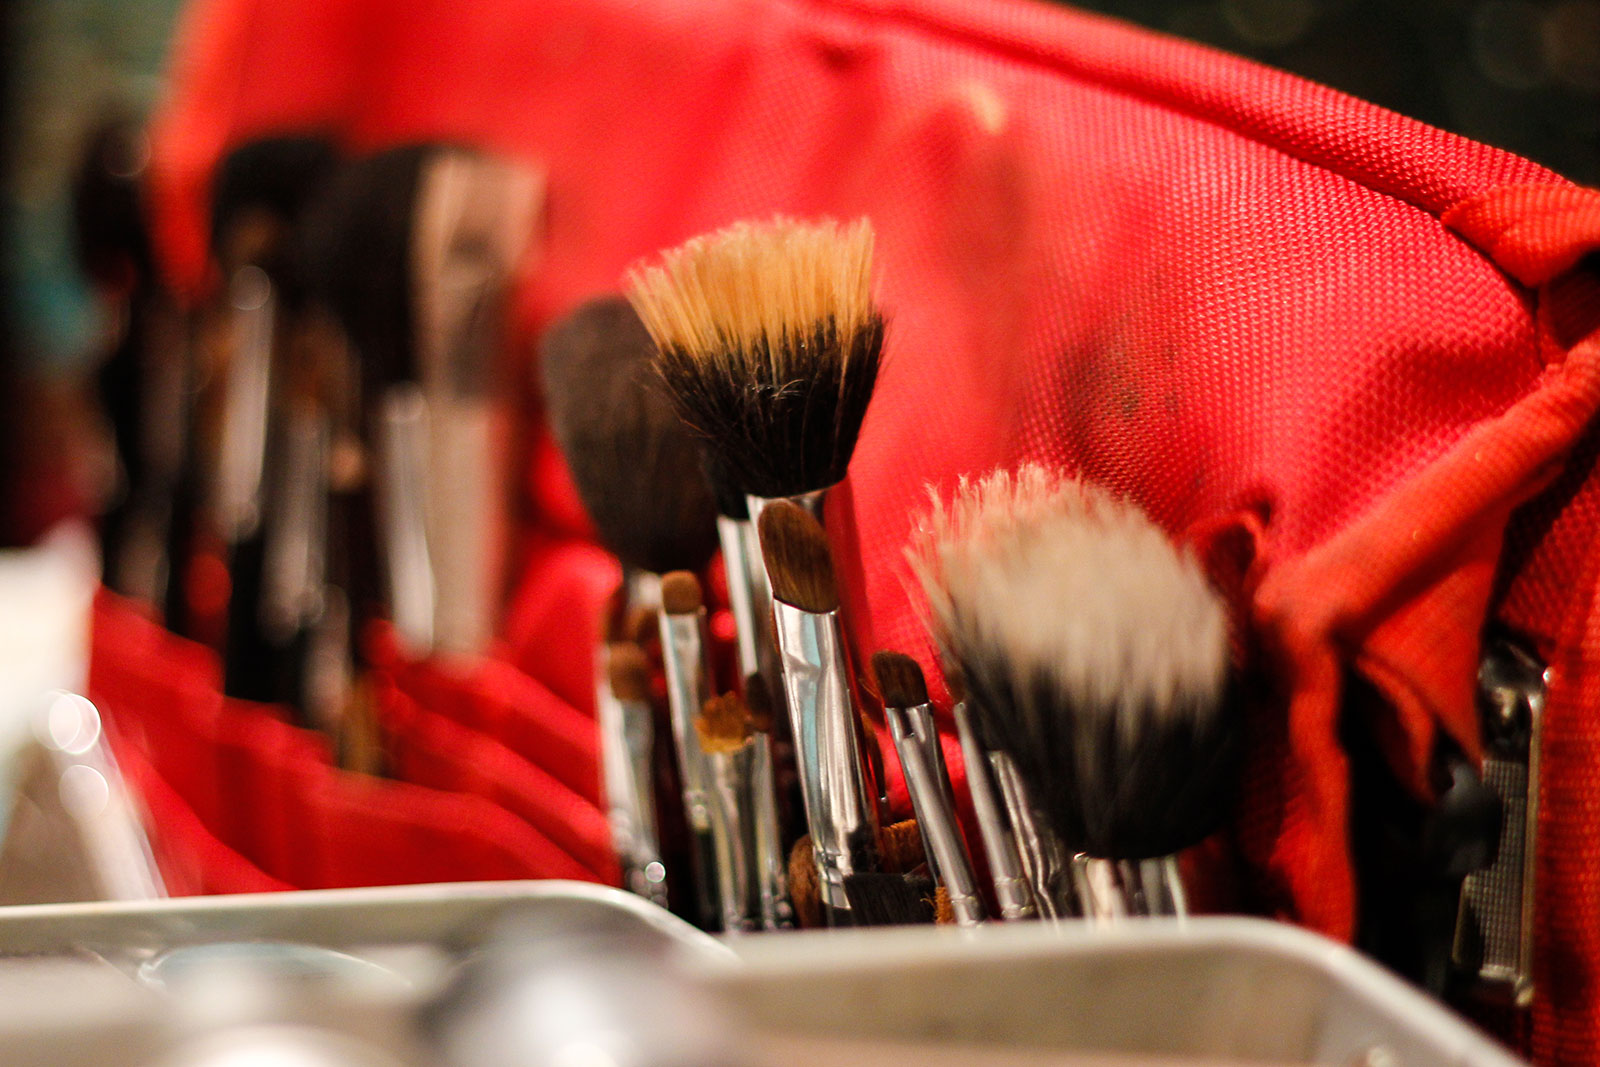 Artistic shot of Brushes in Makeup Kit